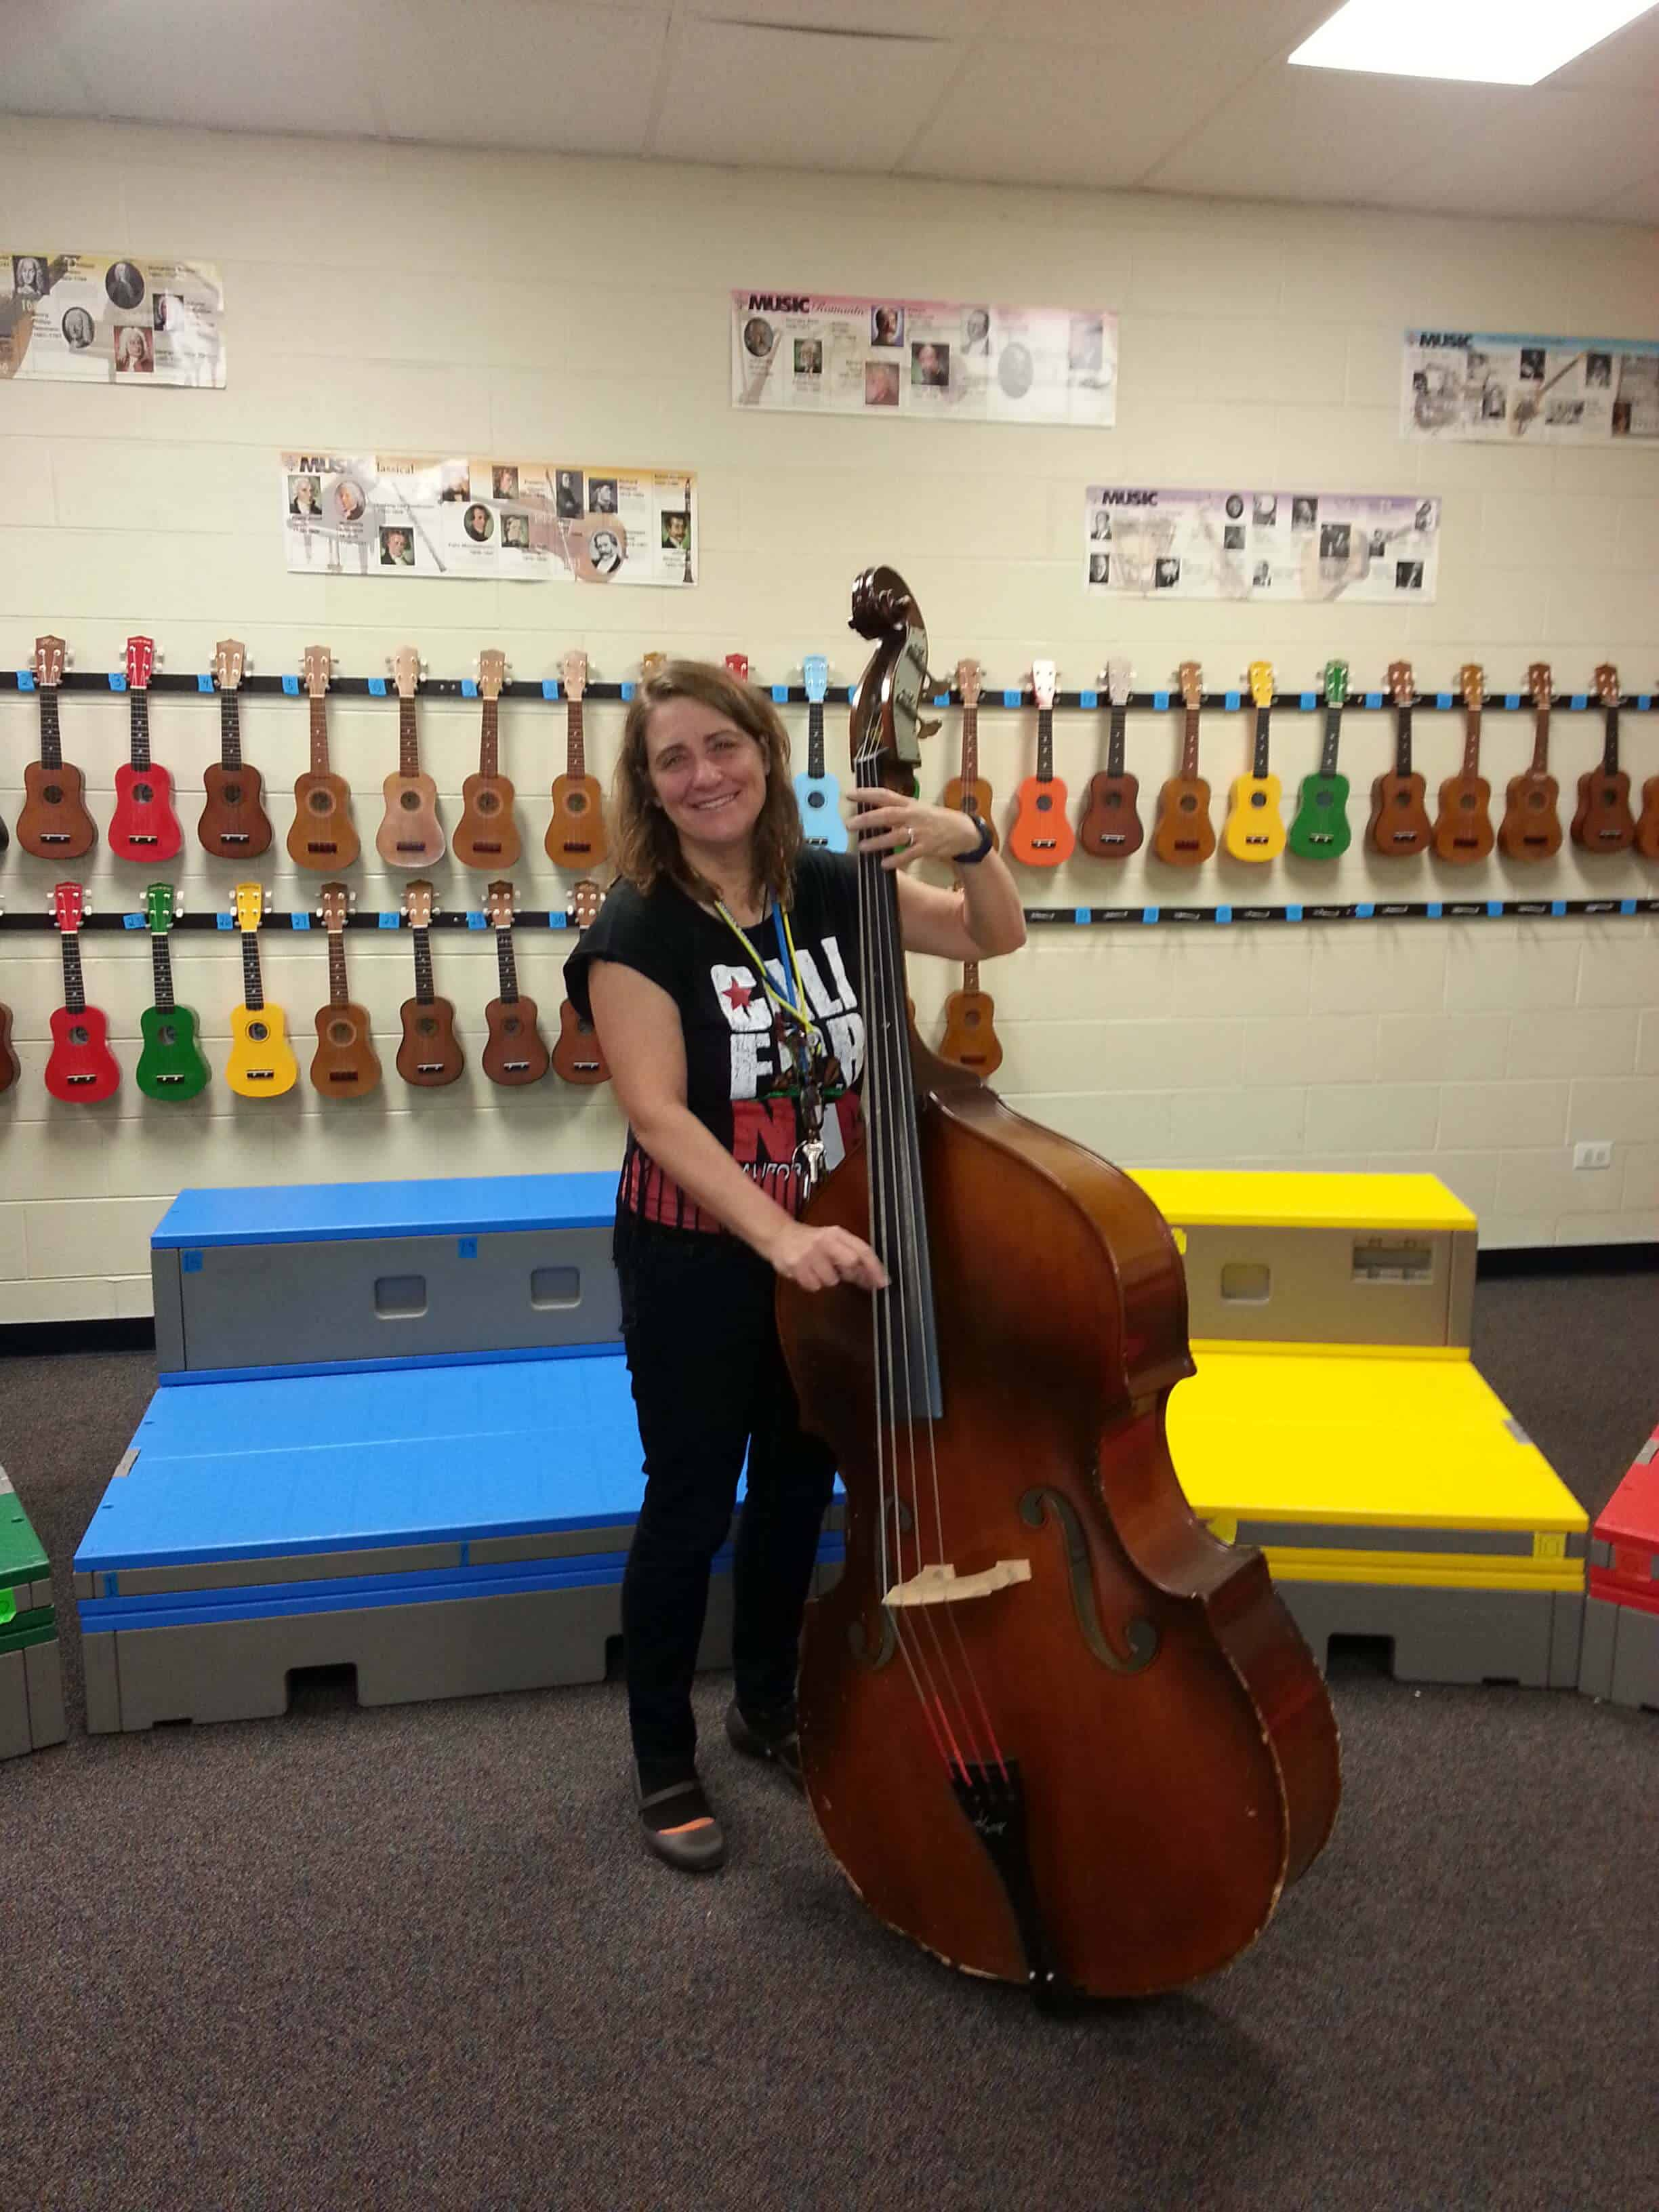 Teaching Upright Bass in Ukulele Class